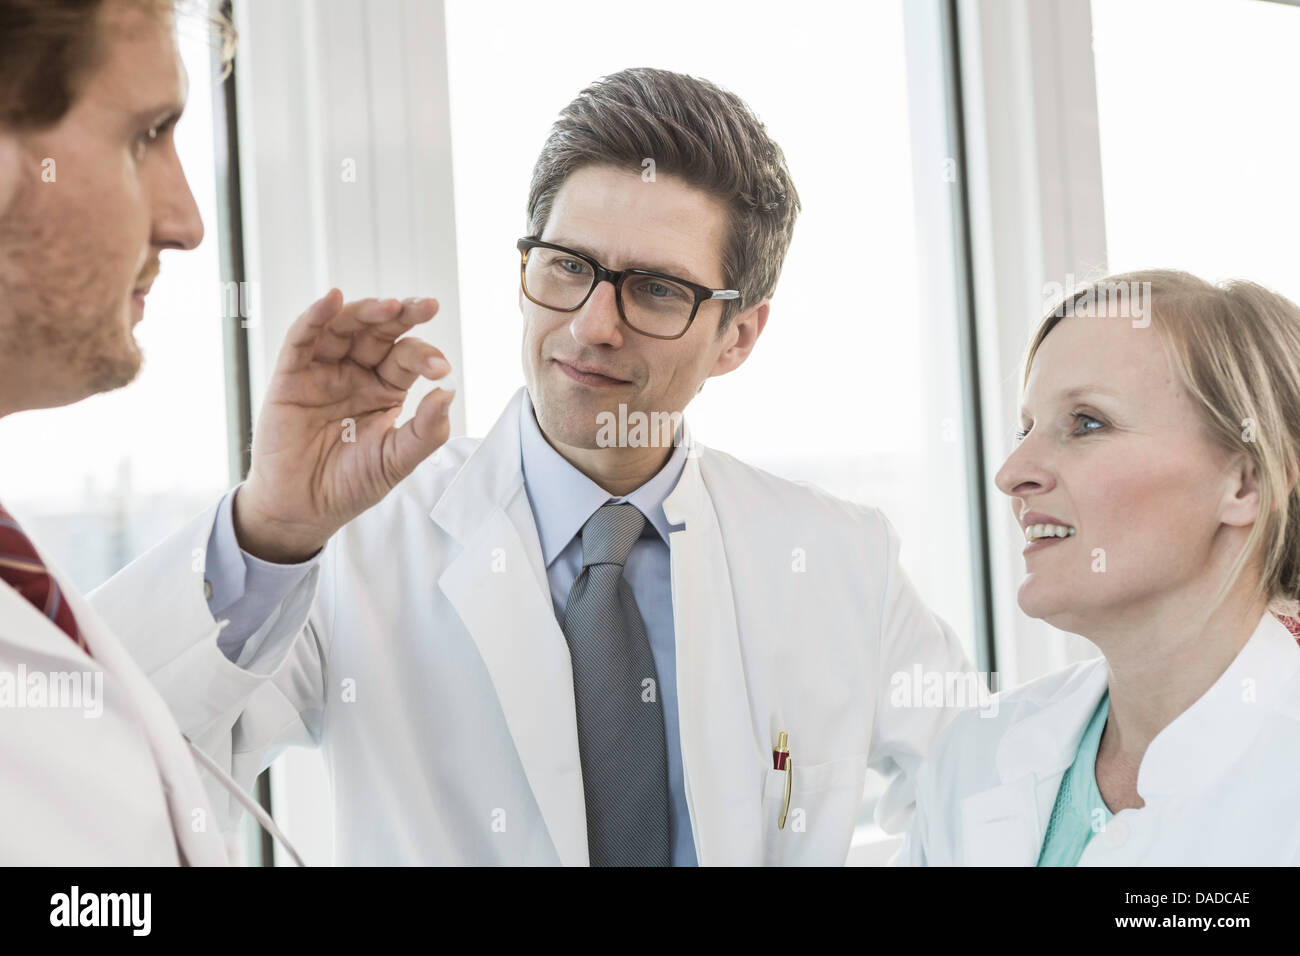 Three people wearing lab coats looking at medicine tablet - Stock Image